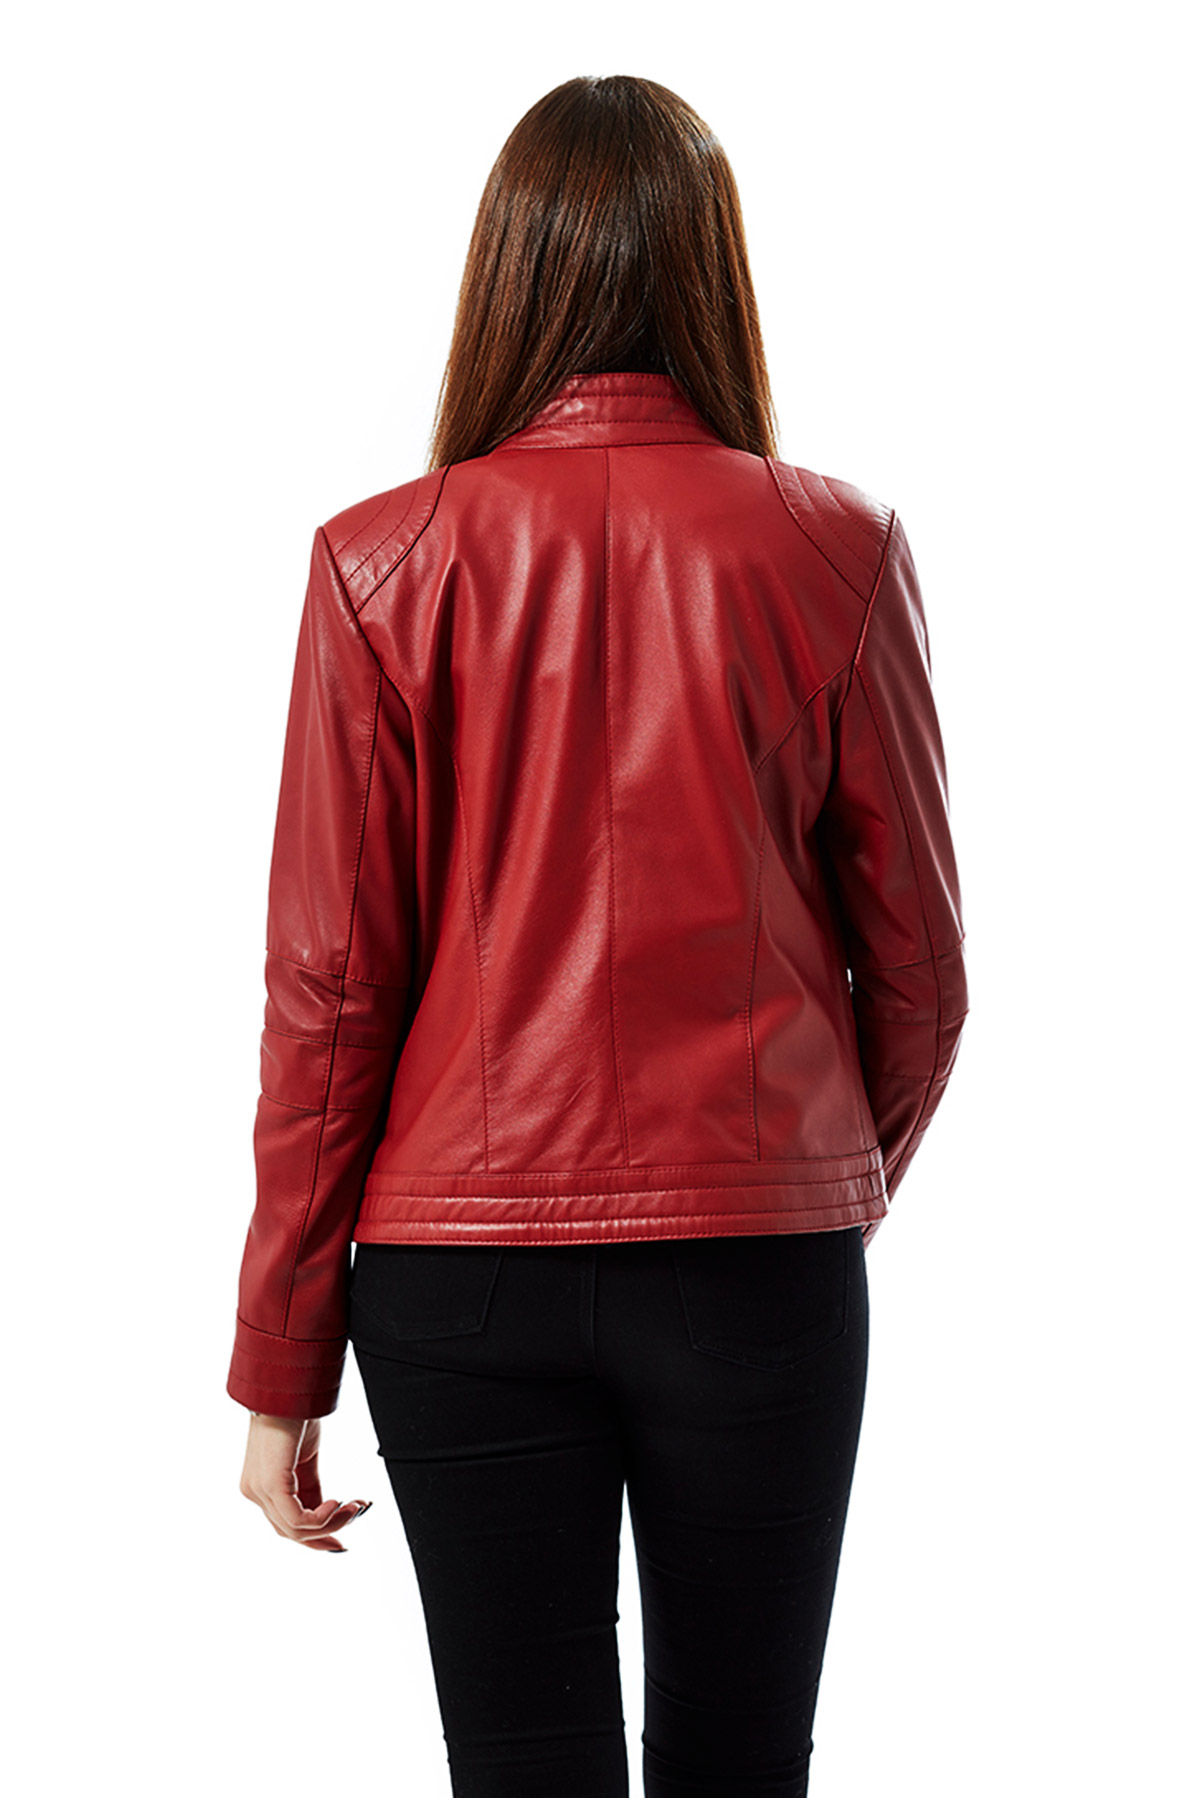 red leather jacket long